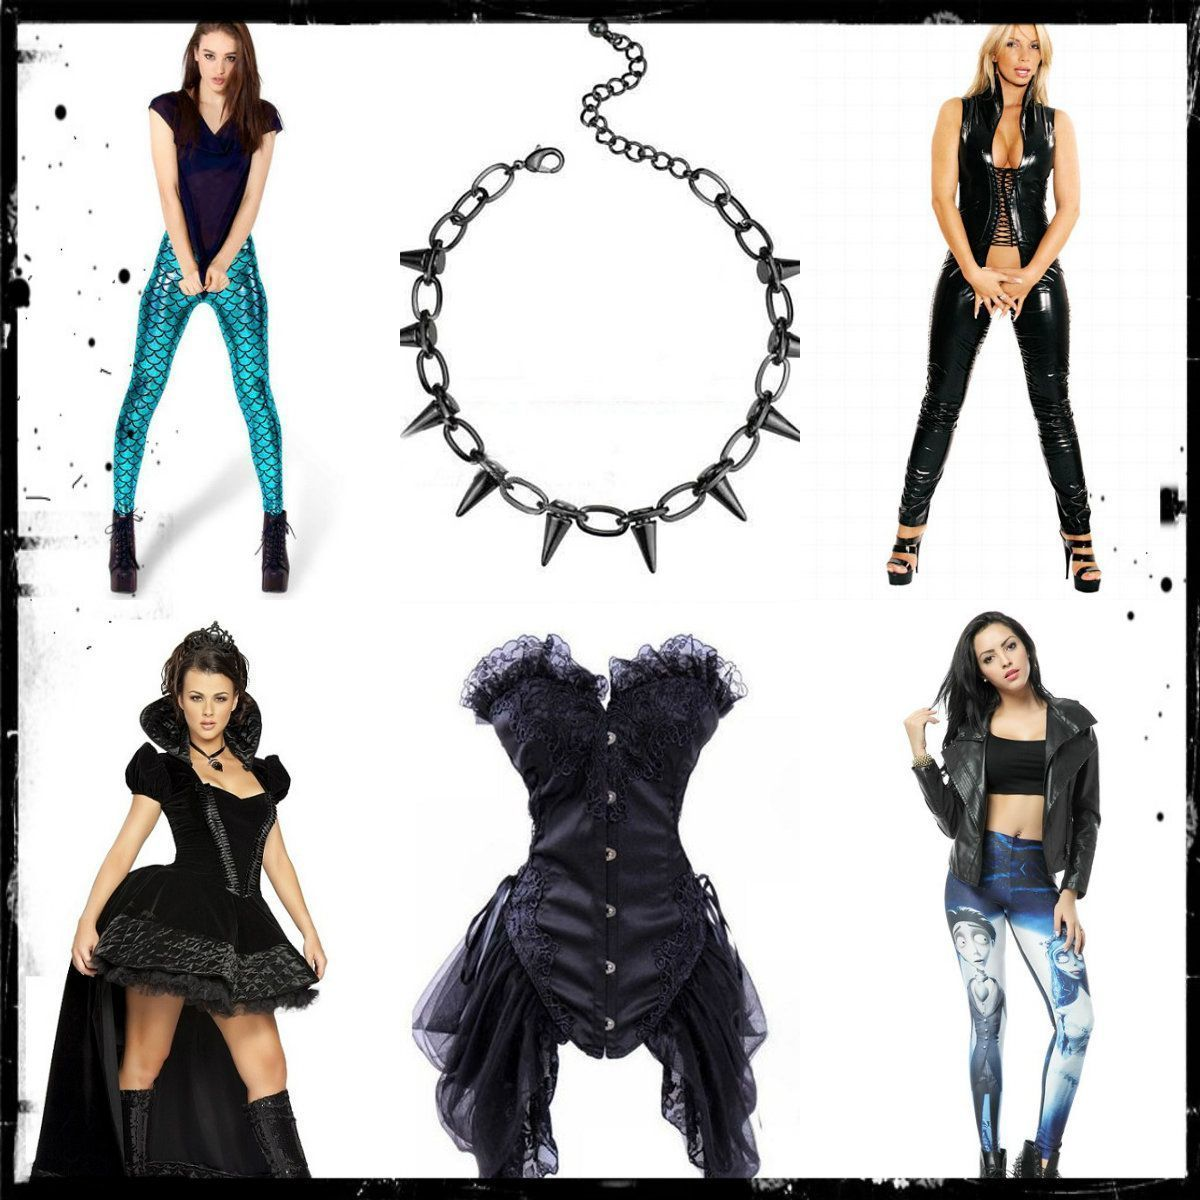 Featured booth kittys jewelry gothic punk and steampunk jewelry and clothing store